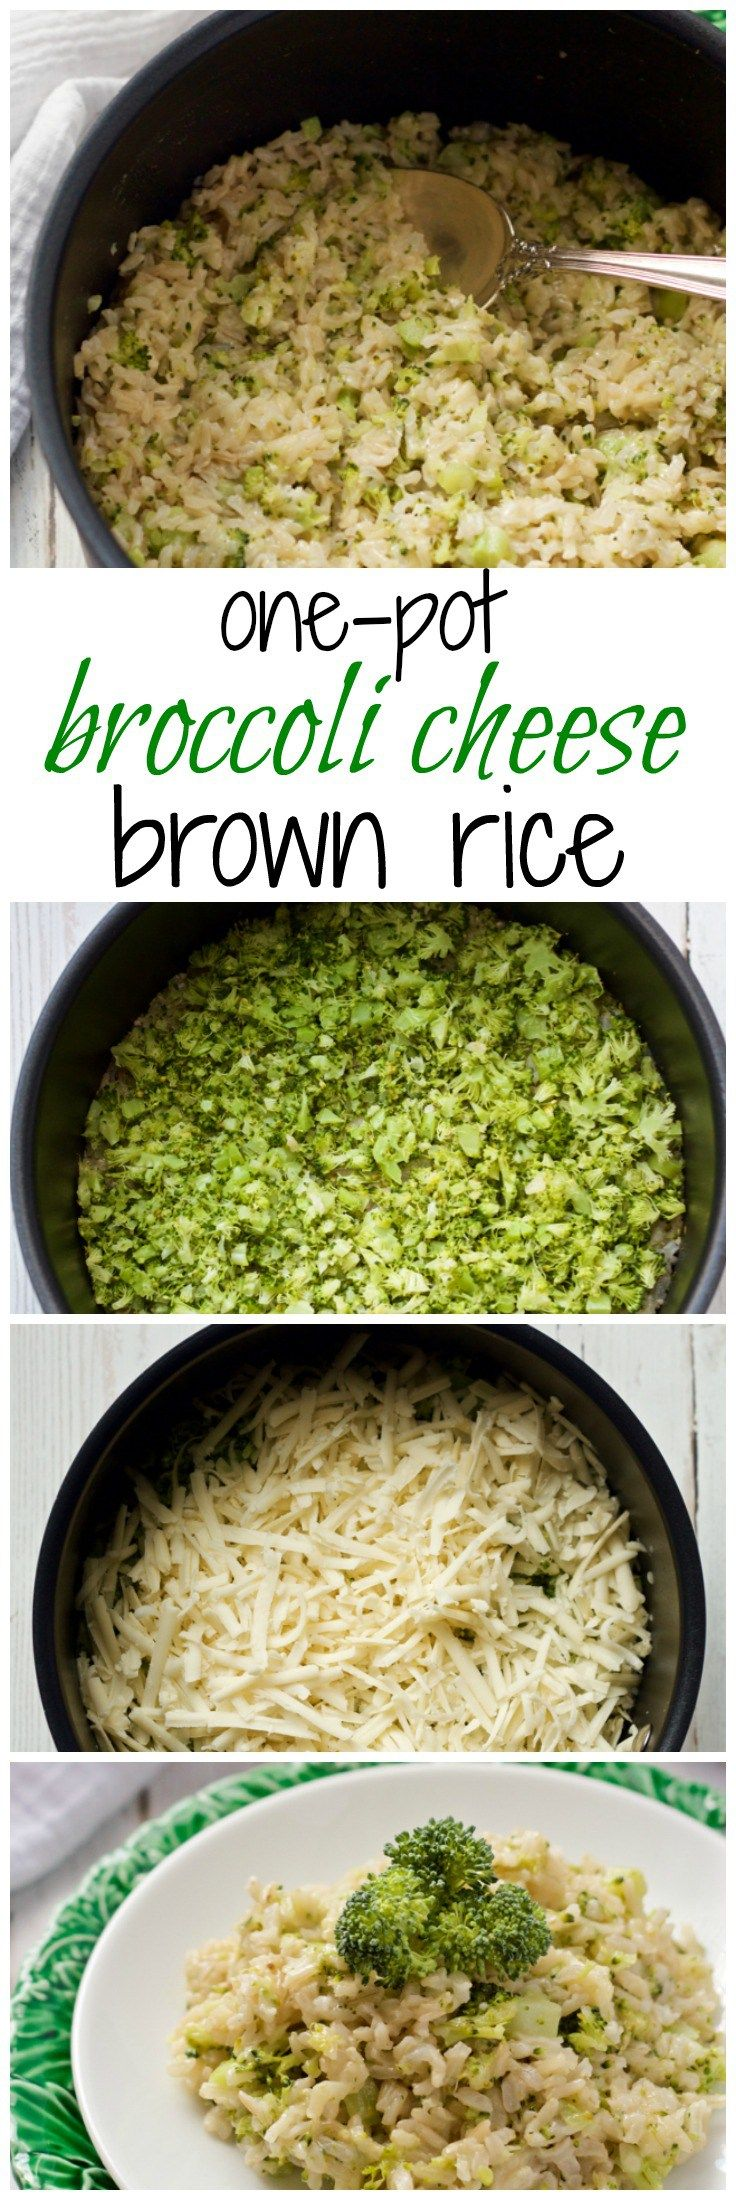 A Warm And Gooey Onepot Broccoli Cheese Brown Rice  An Easy Side Dish